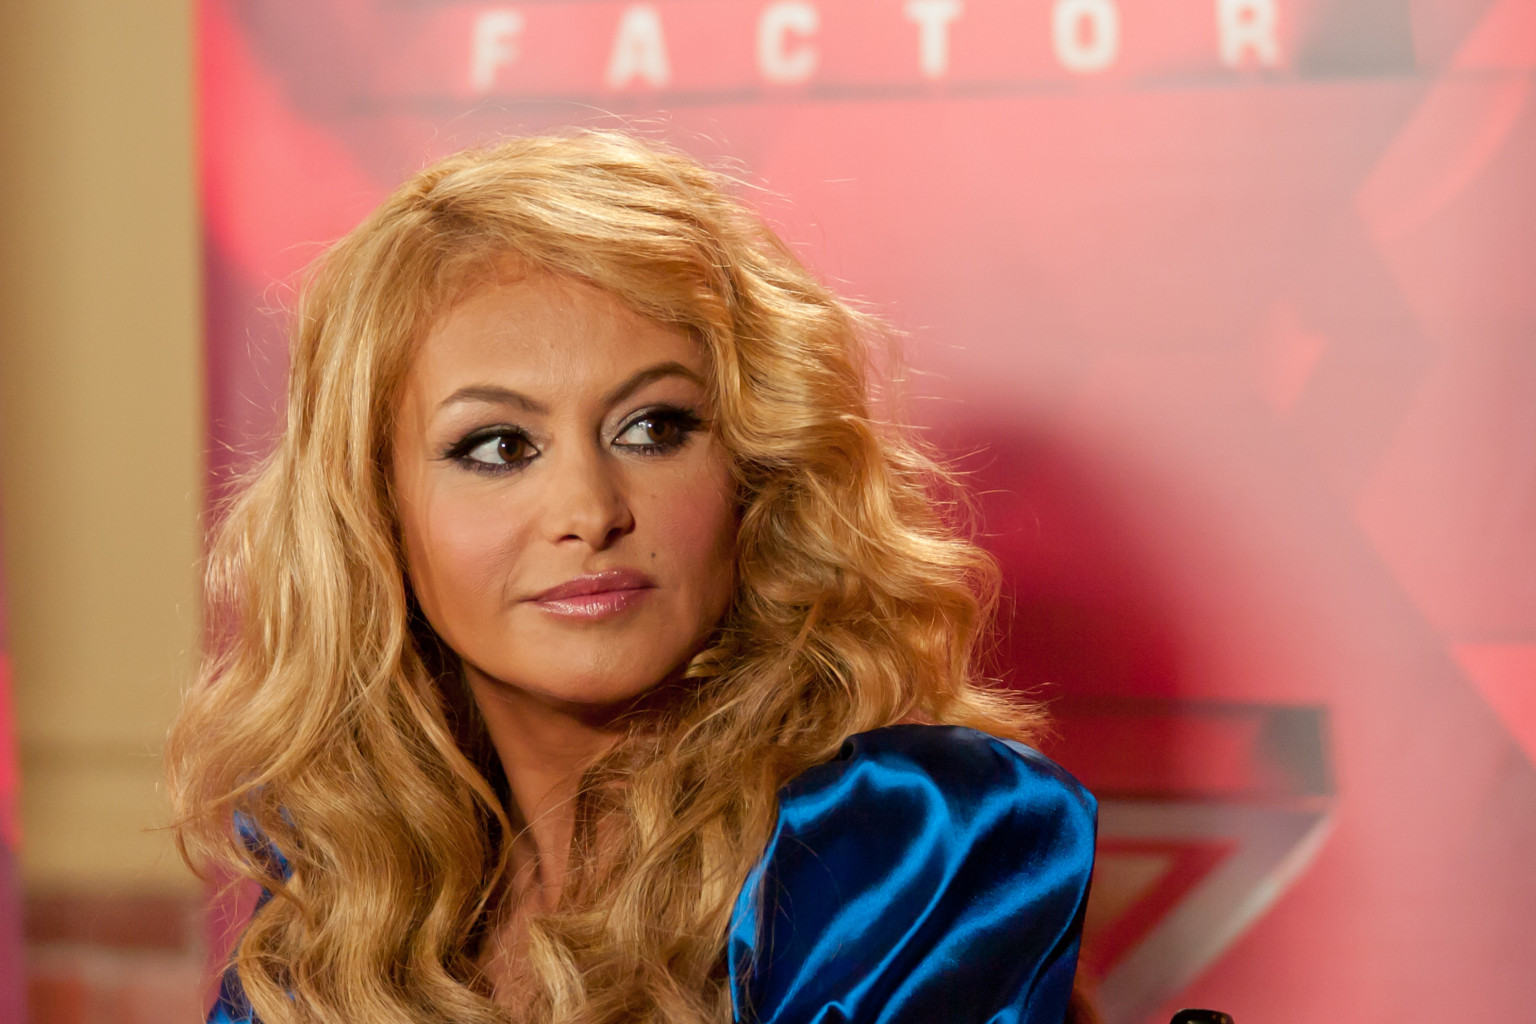 No 'X Factor' Or 'La Voz Kids,' Is Paulina Rubio's Career Done?